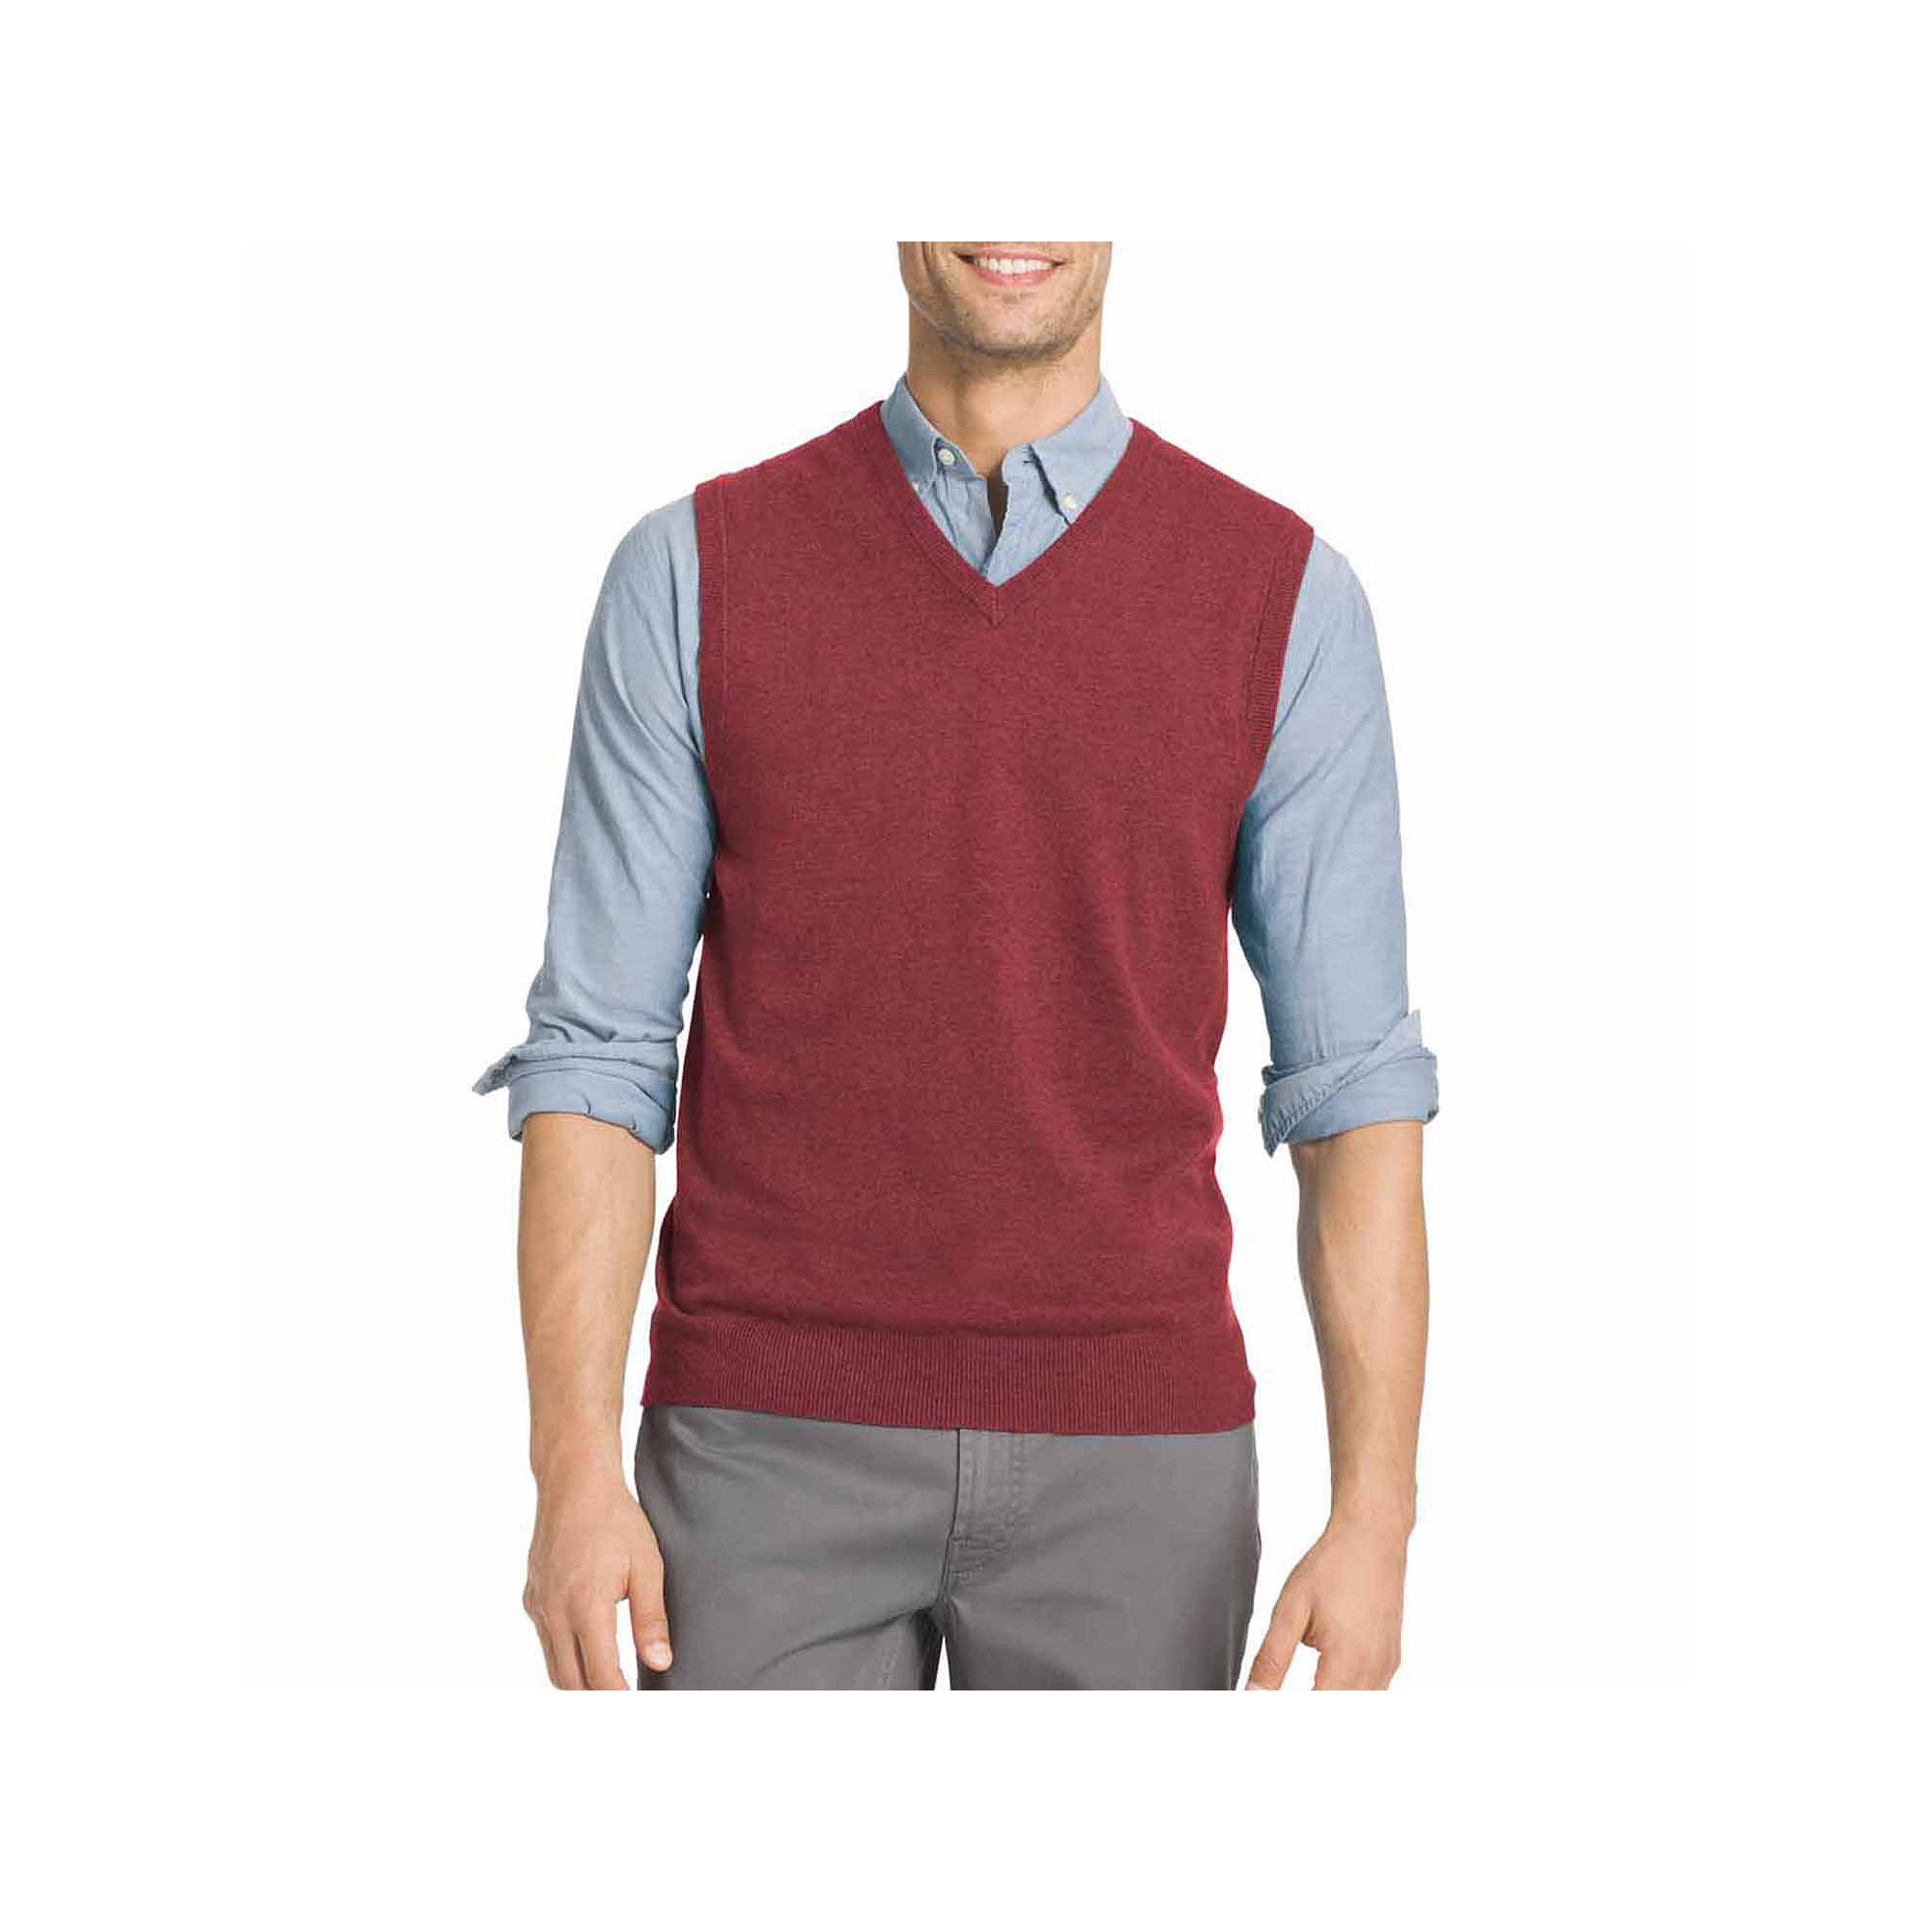 UPC 015844819503 - Izod V Neck Cotton Sweater Vest | upcitemdb.com